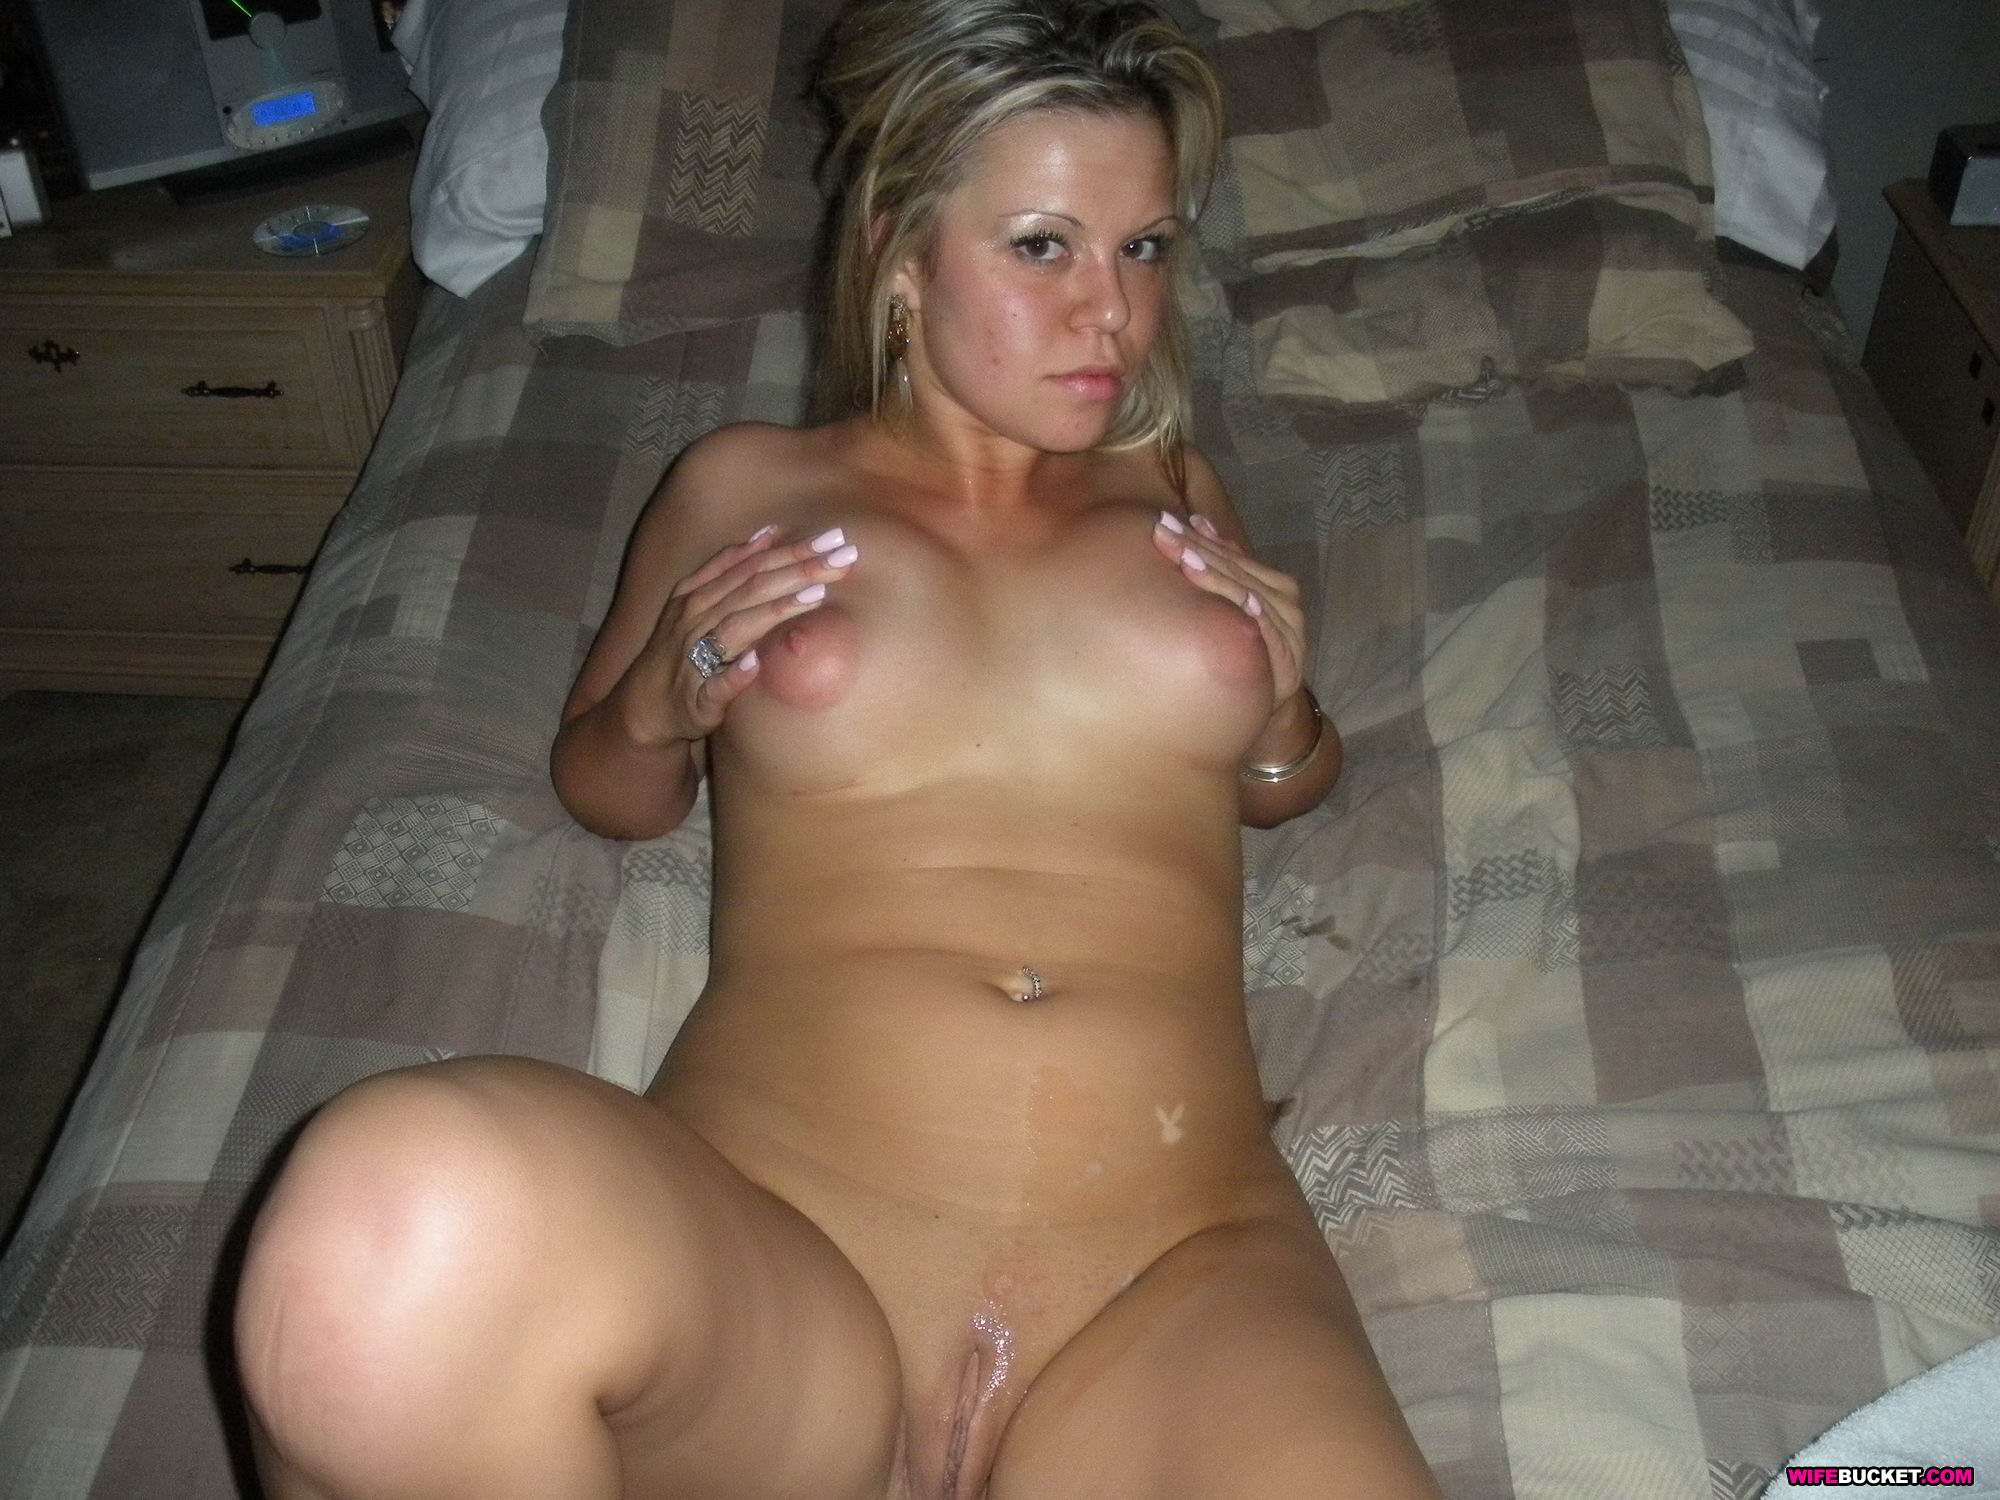 Milf amateur naked in bed